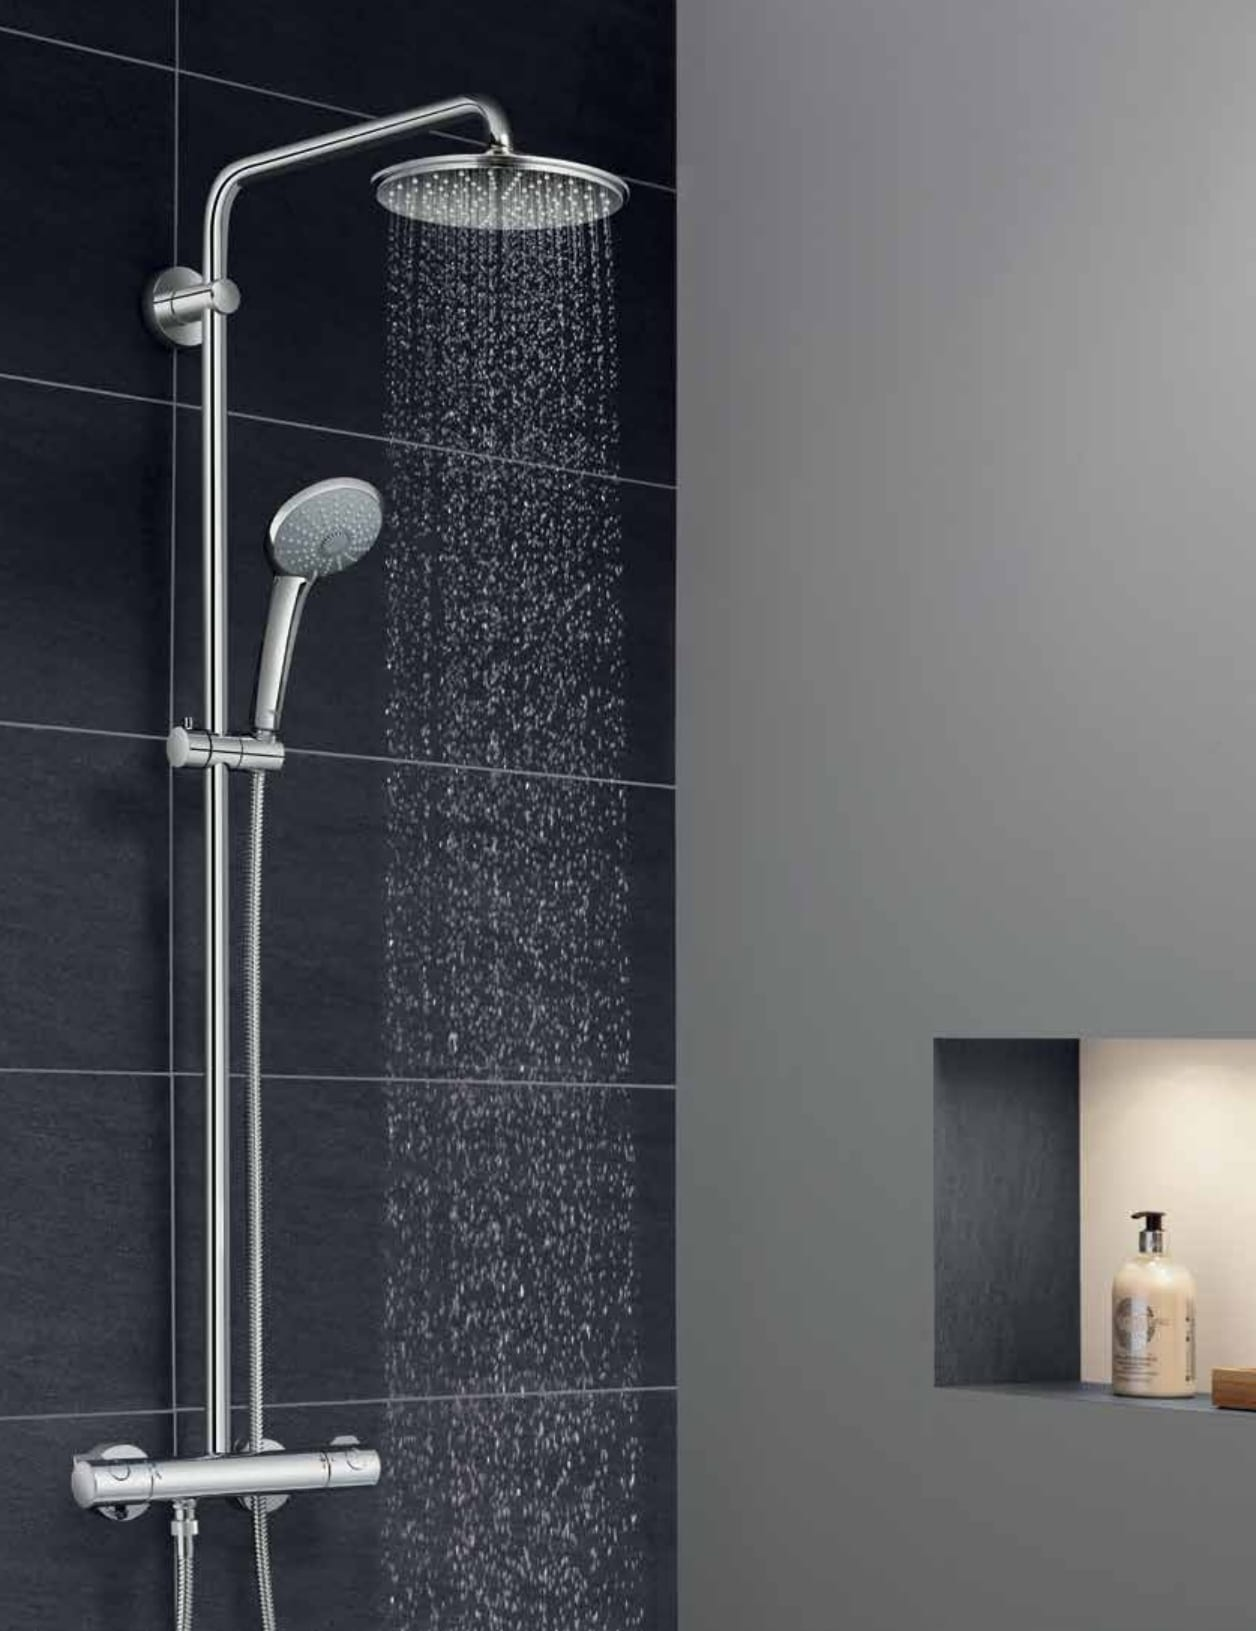 grohe starlight chrome euphoria shower system with adjustable hand shower holder dreamspray and turbostat